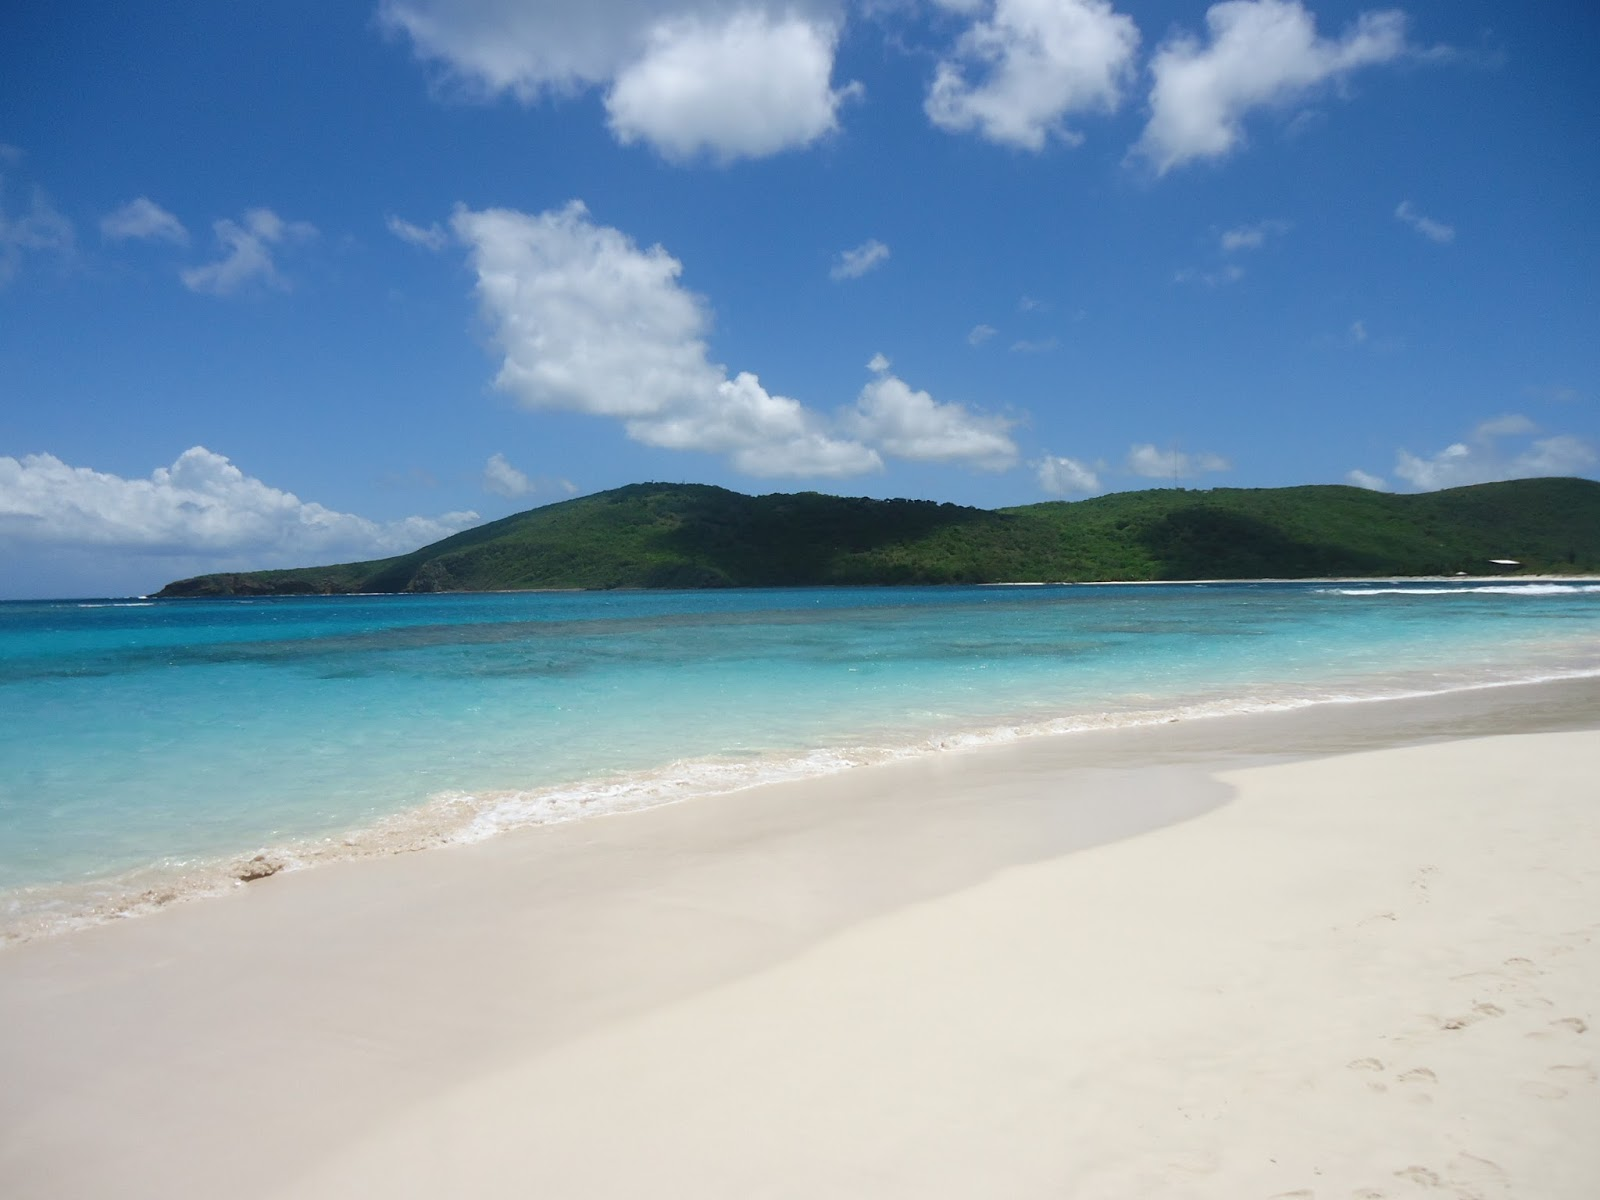 About 1 5 Hours South This Picturesque White Sand Beach Is Seemingly Endless It S A Perfect For Walking People Watching And Beachcombing